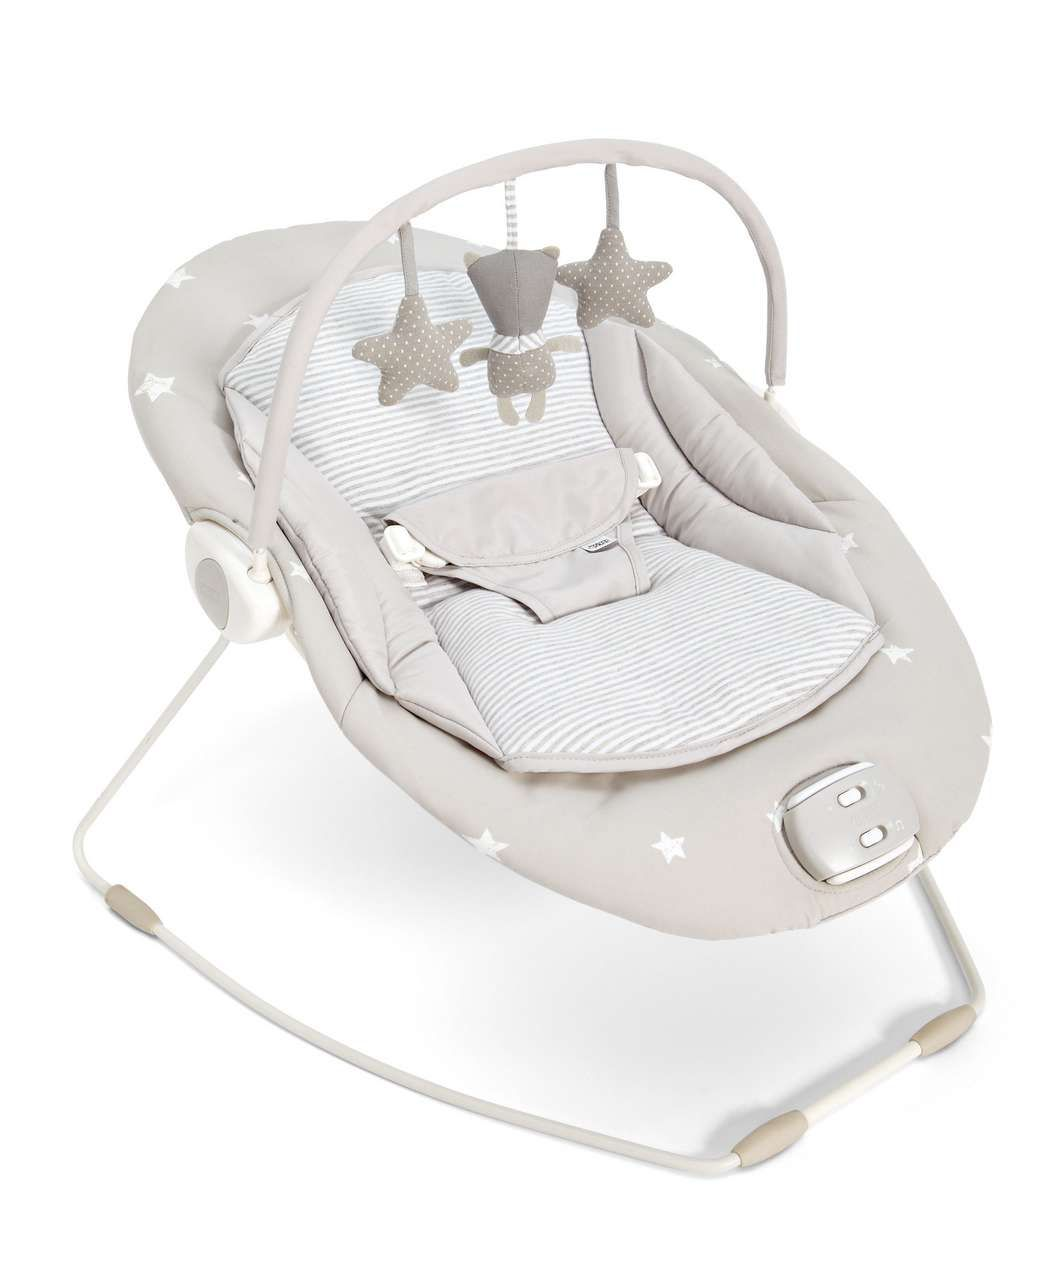 capella bouncer  catch a star  all rockers bouncers  swings  - baby gear